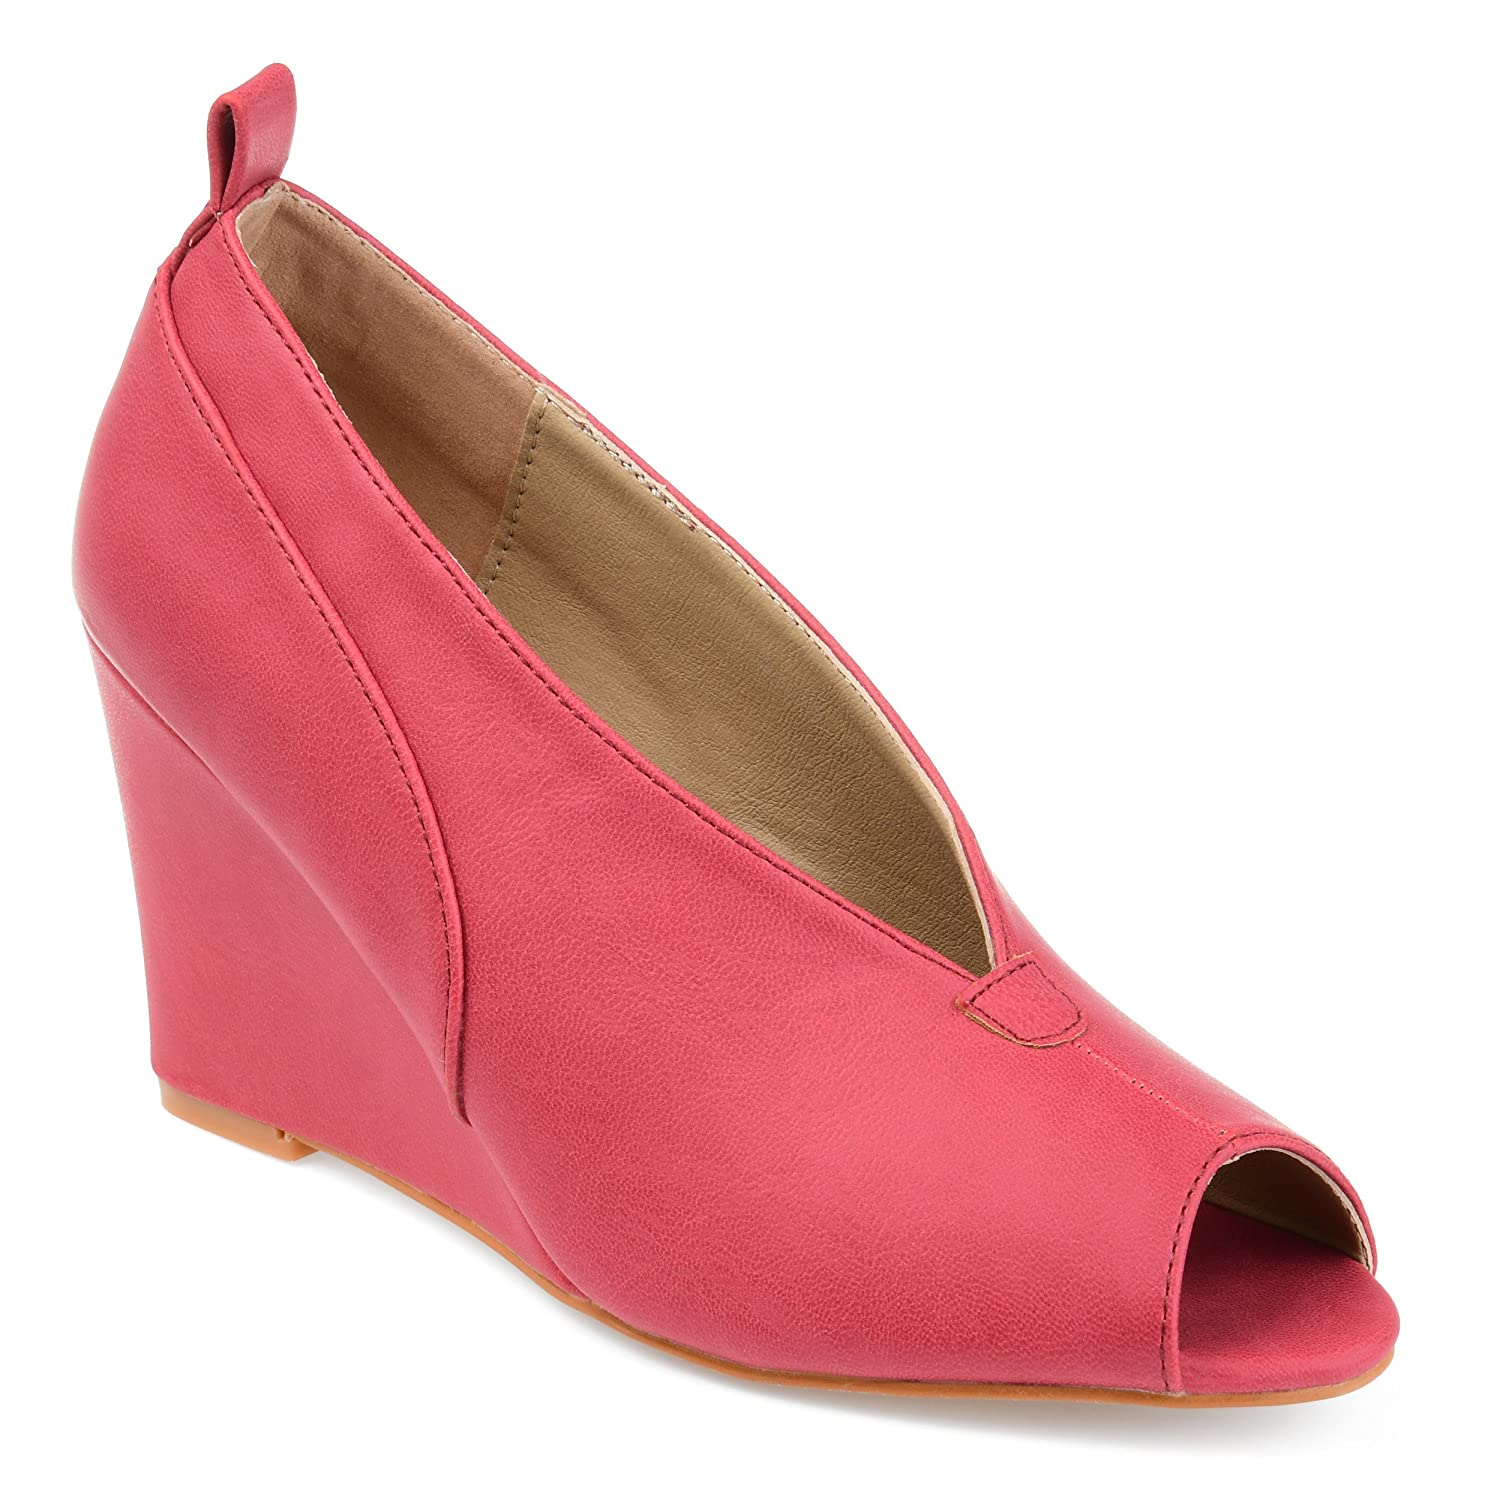 Brinley Co Womens Camden Faux Leather Peep-Toe Deep V-Cut Wedges B07573BM2K 10 B(M) US|Pink